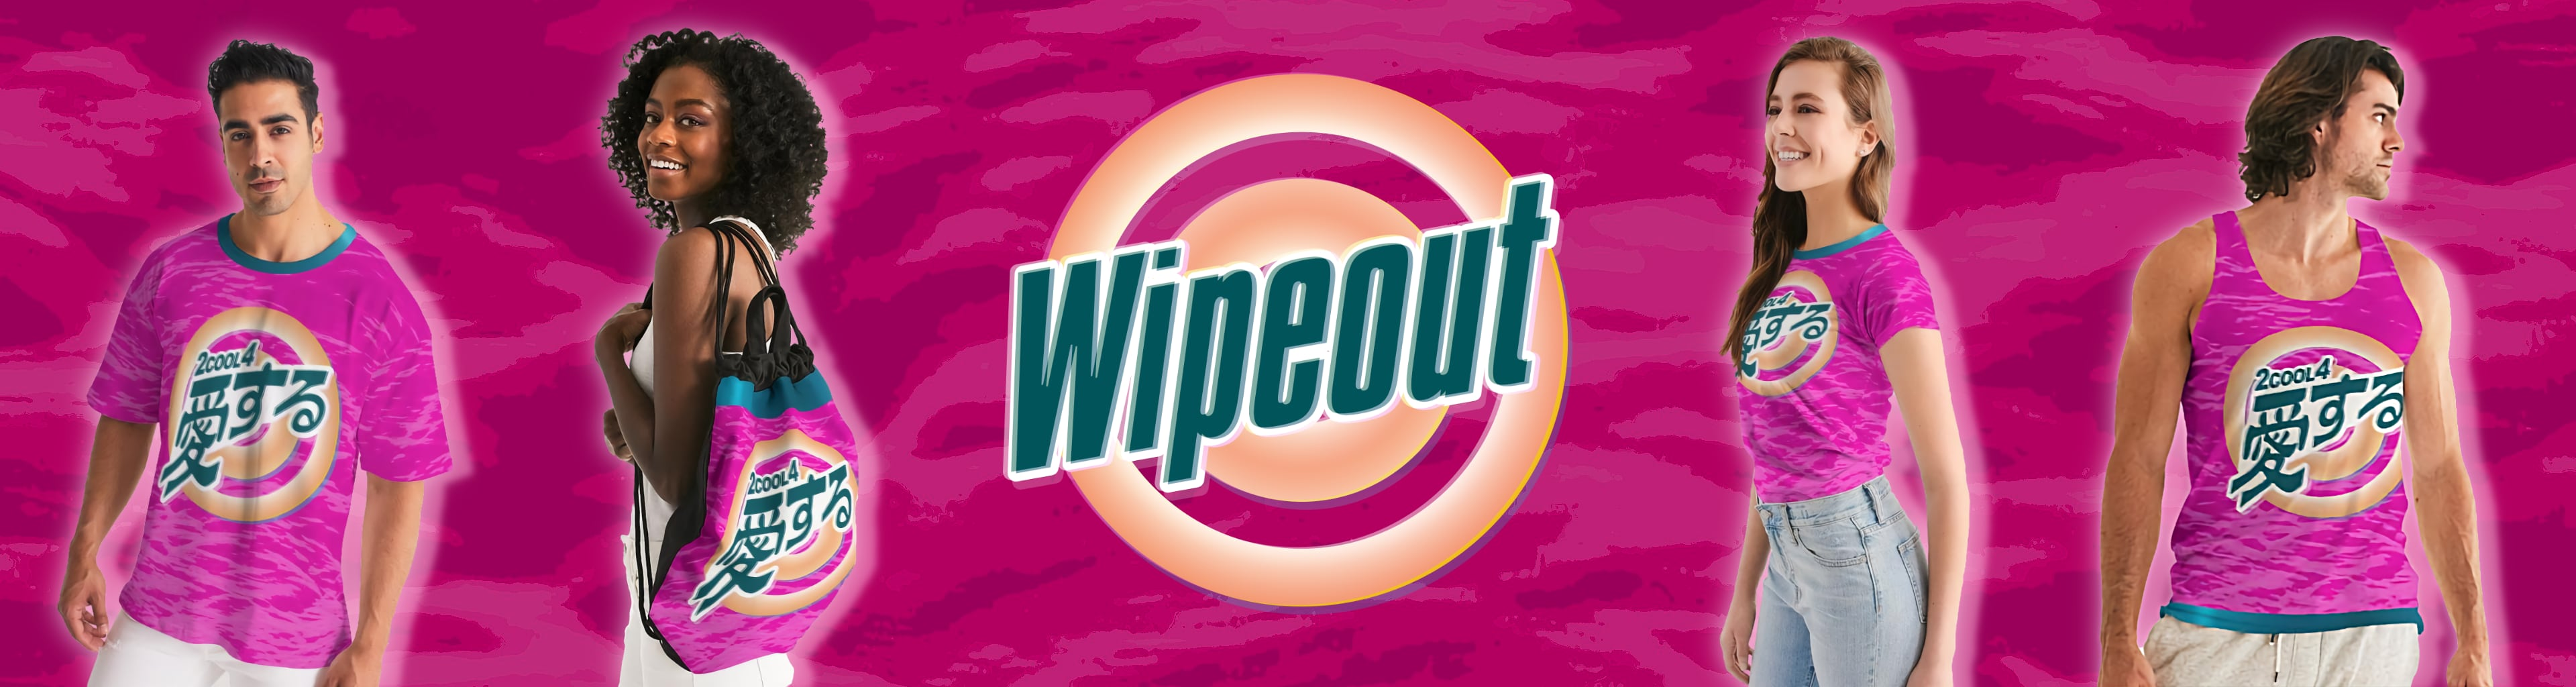 Wipeout Collection Banner